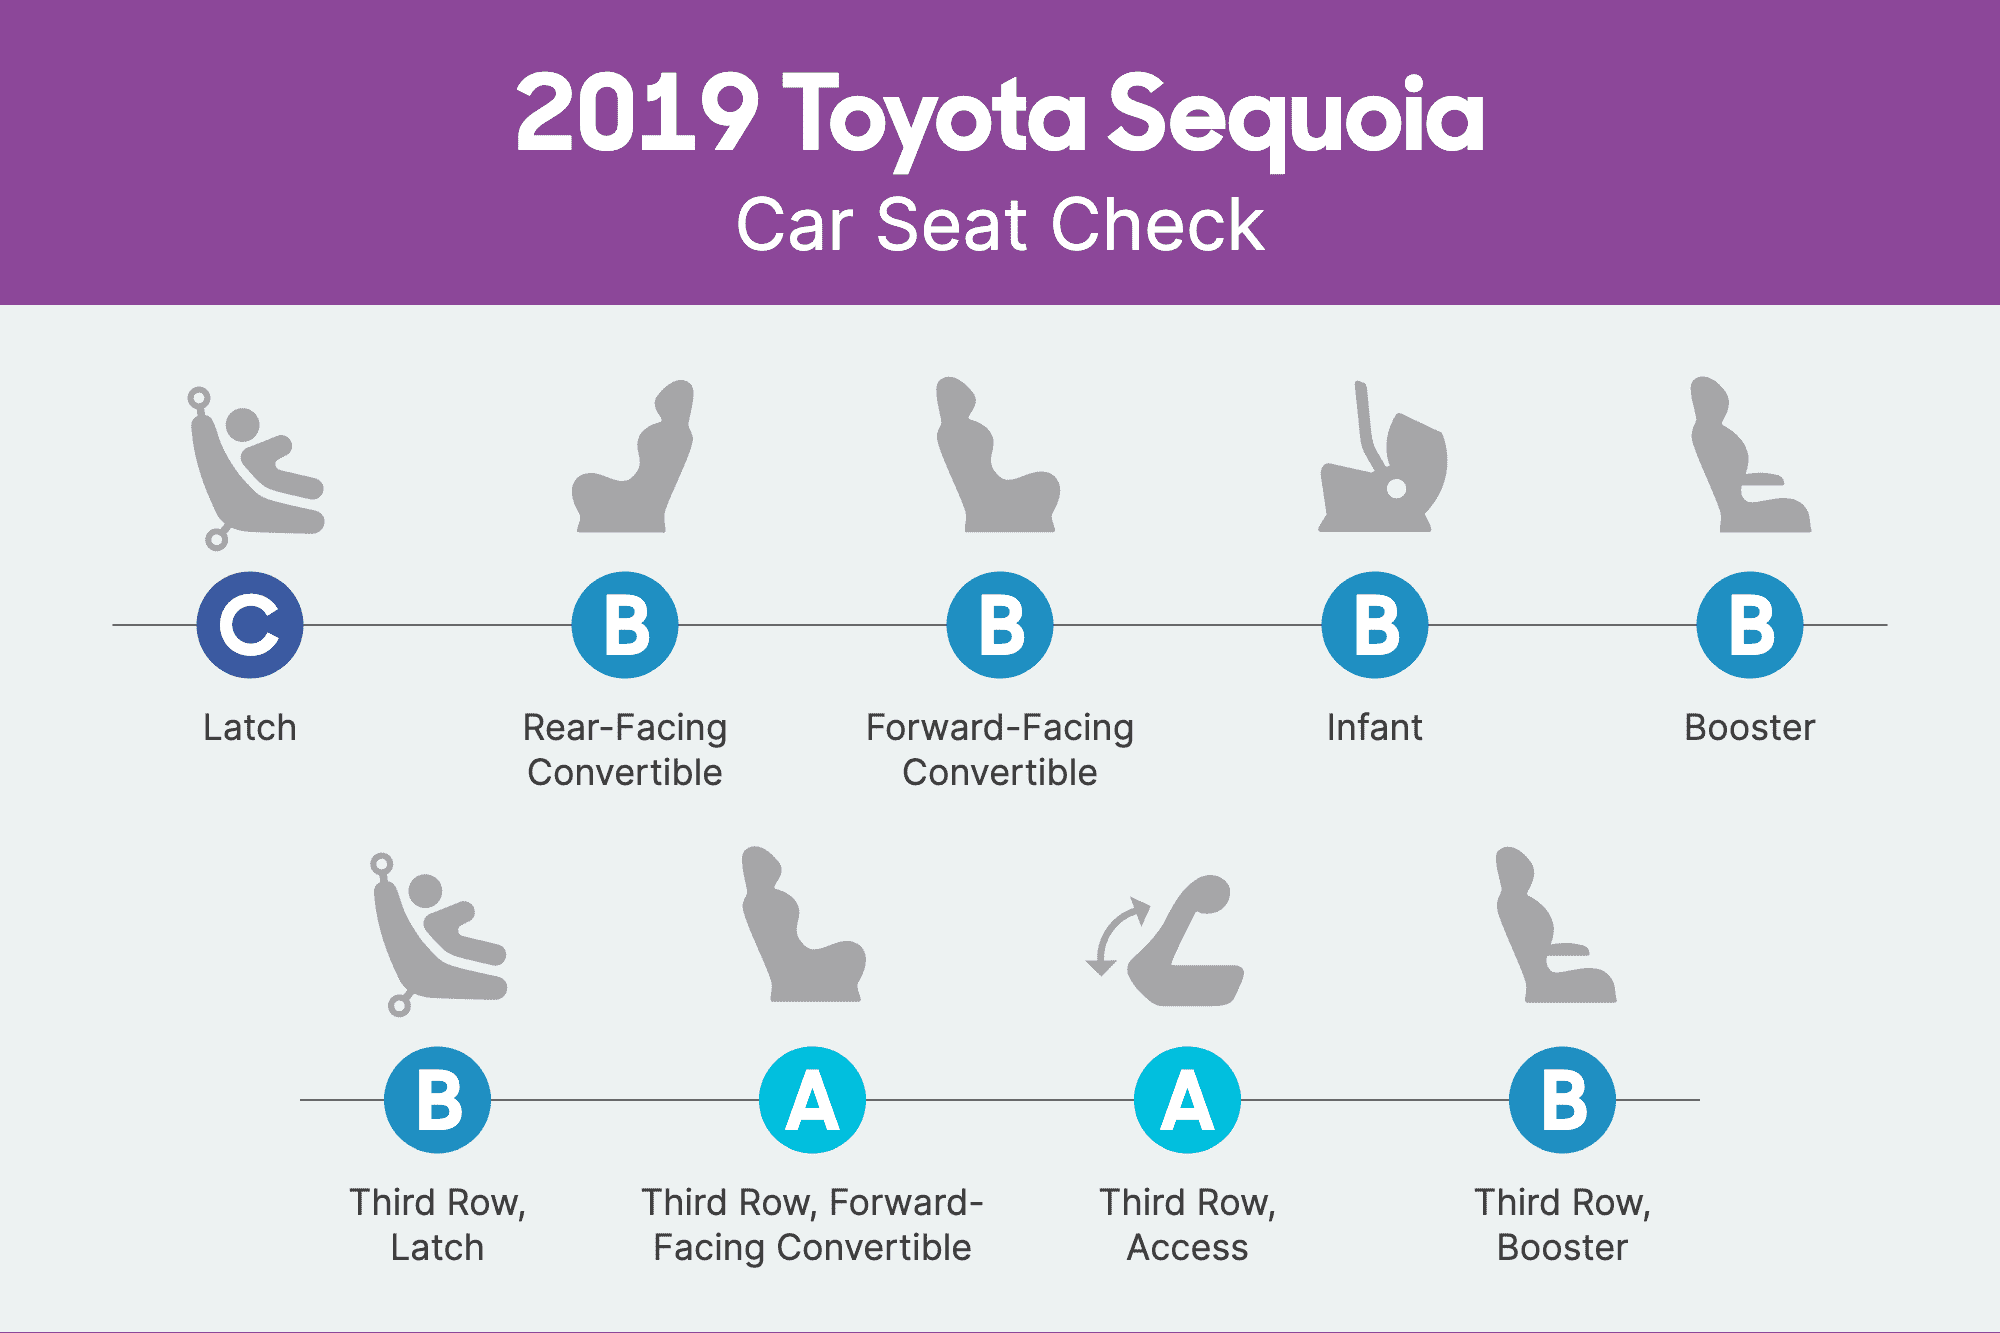 How Do Car Seats Fit in a 2019 Toyota Sequoia?